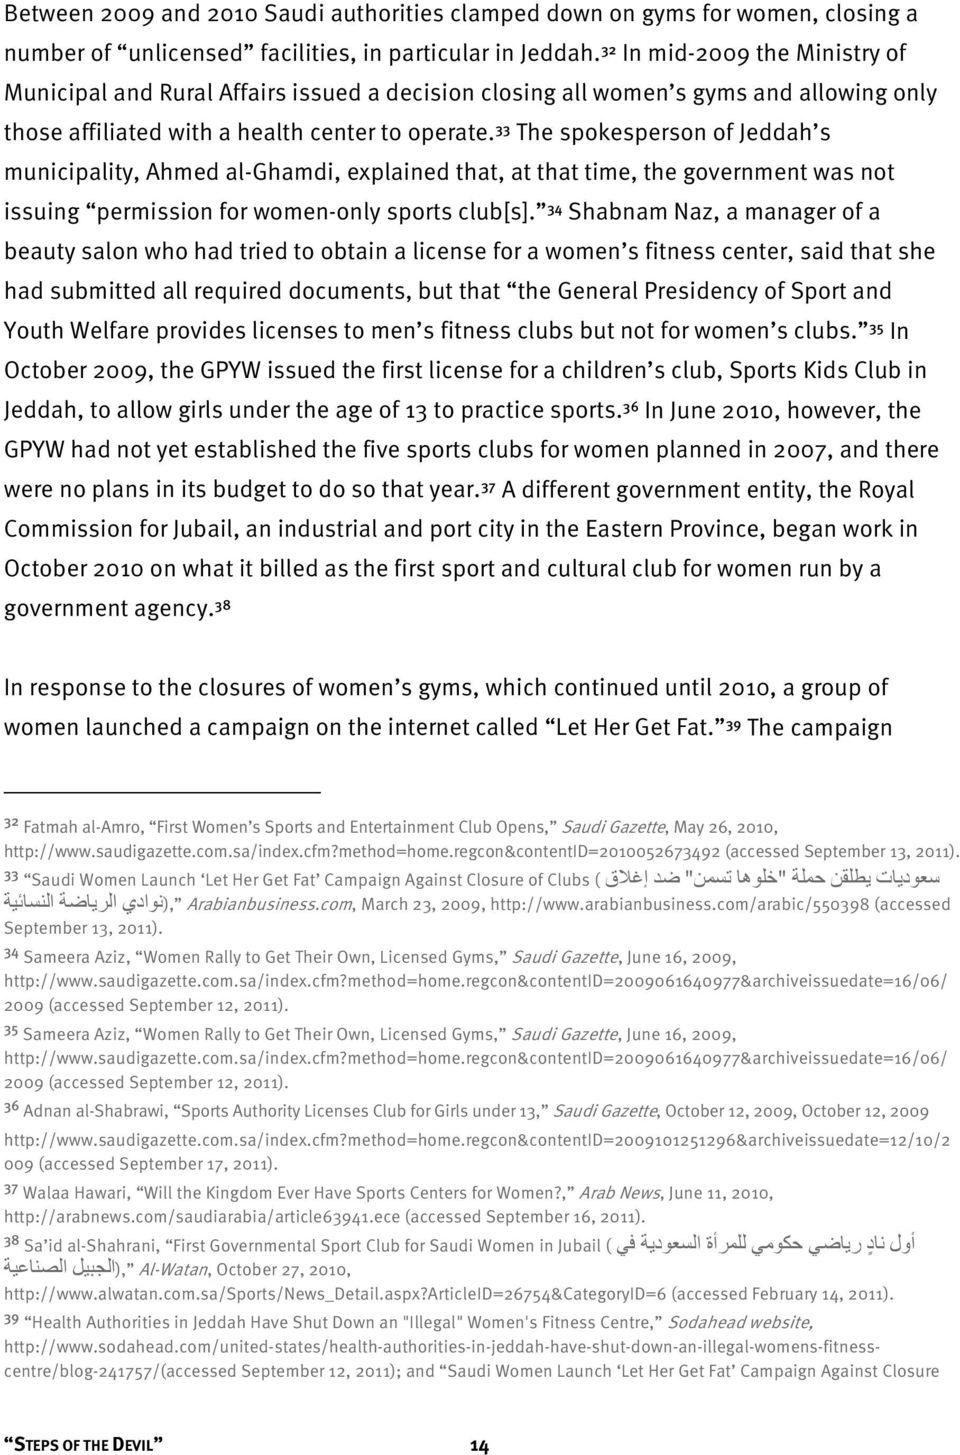 33 The spokesperson of Jeddah s municipality, Ahmed al-ghamdi, explained that, at that time, the government was not issuing permission for women-only sports club[s].